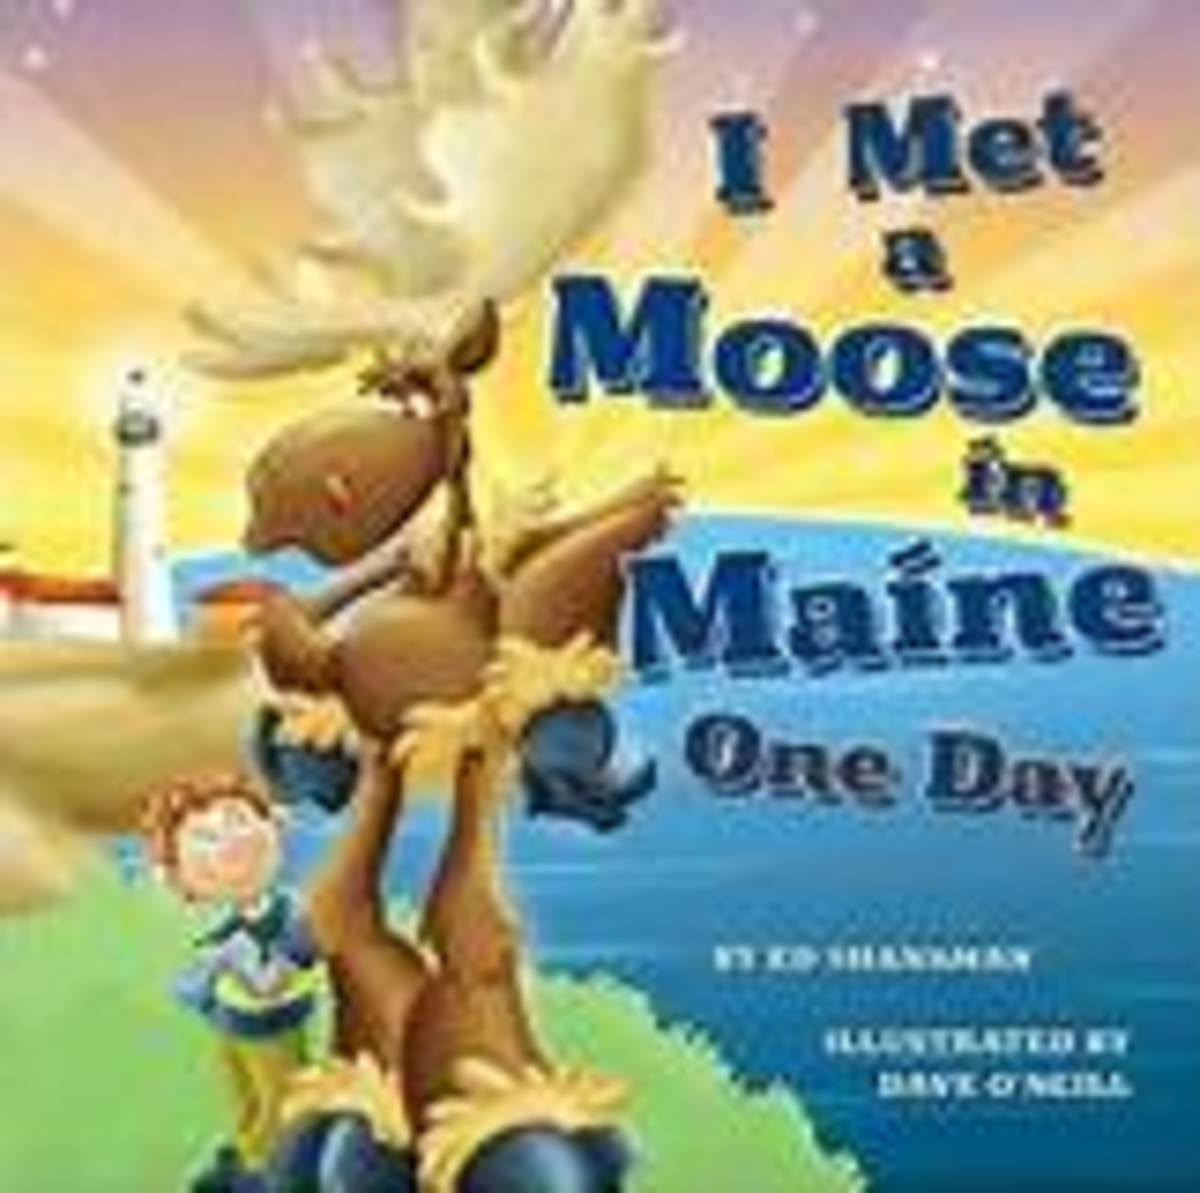 I Met a Moose in Maine One Day by Ed Shankman